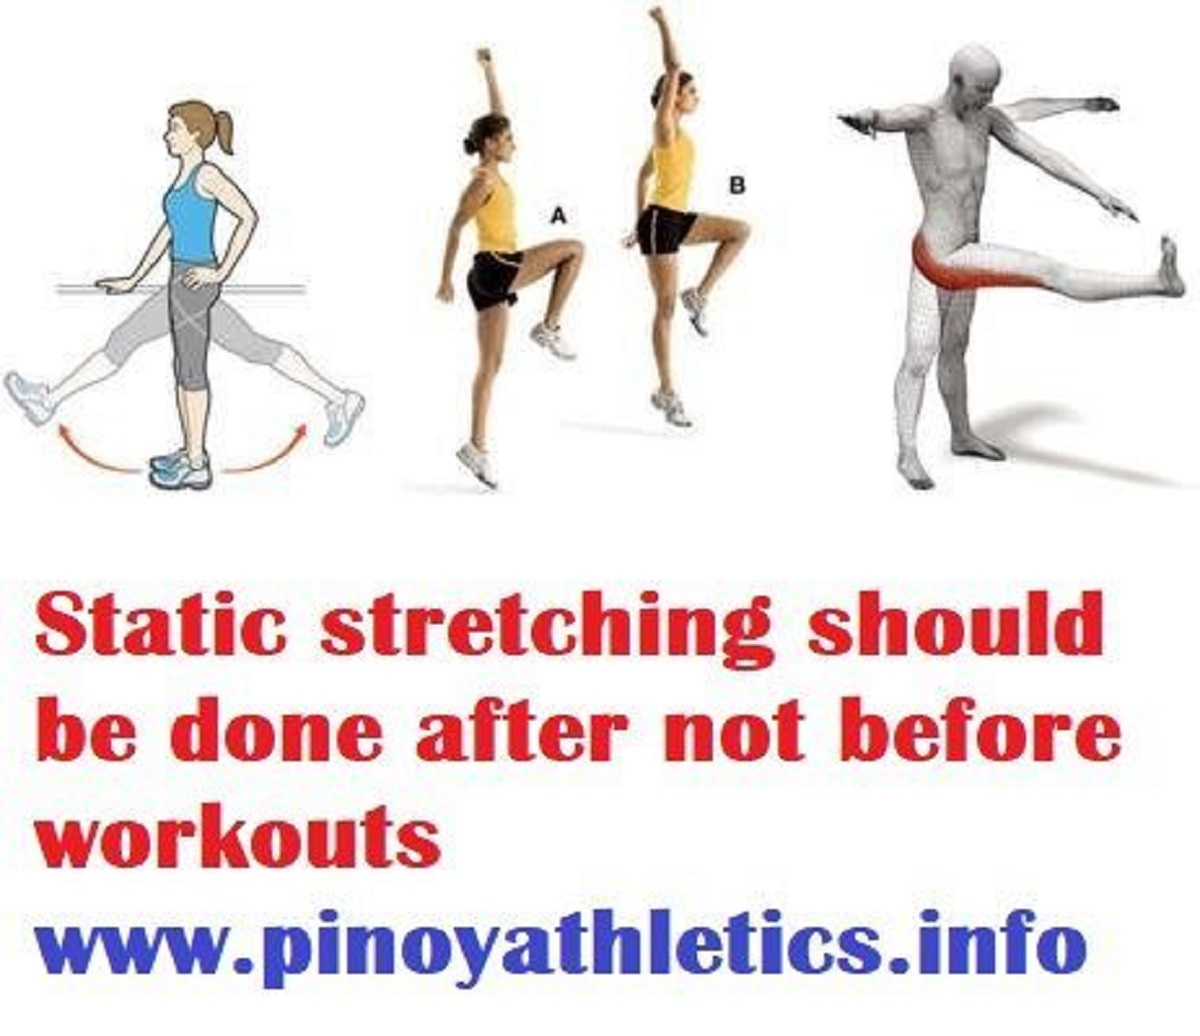 Is static stretching bad before exercise?